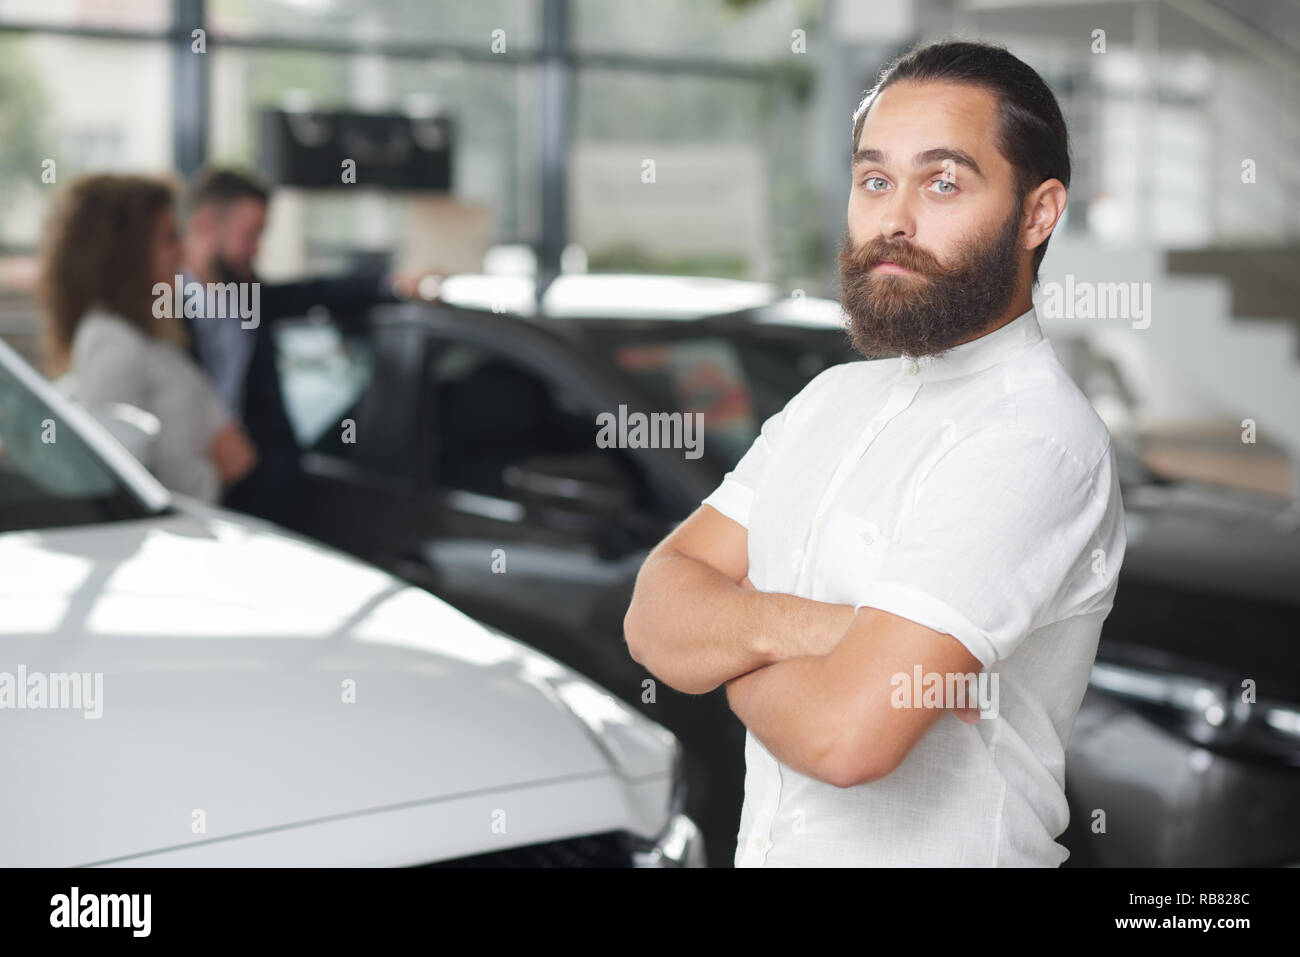 Brutal, bearded man standing, looking at camera. Man in white shirt posing in car dealership. Handsome client of car center. Background of car showroom with different vehicles. - Stock Image